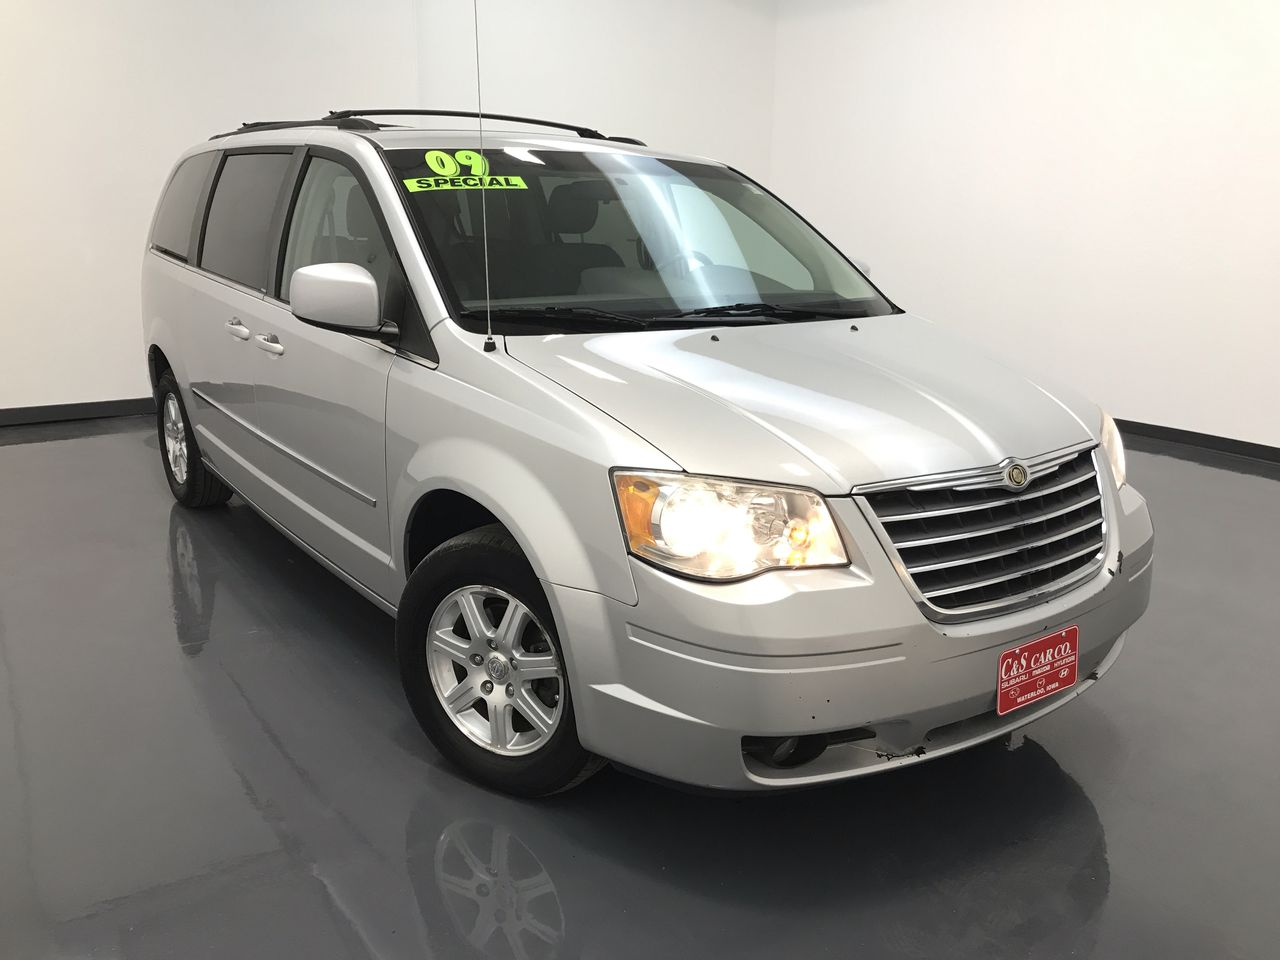 2009 Chrysler Town & Country Touring LWB  - HY7767A  - C & S Car Company